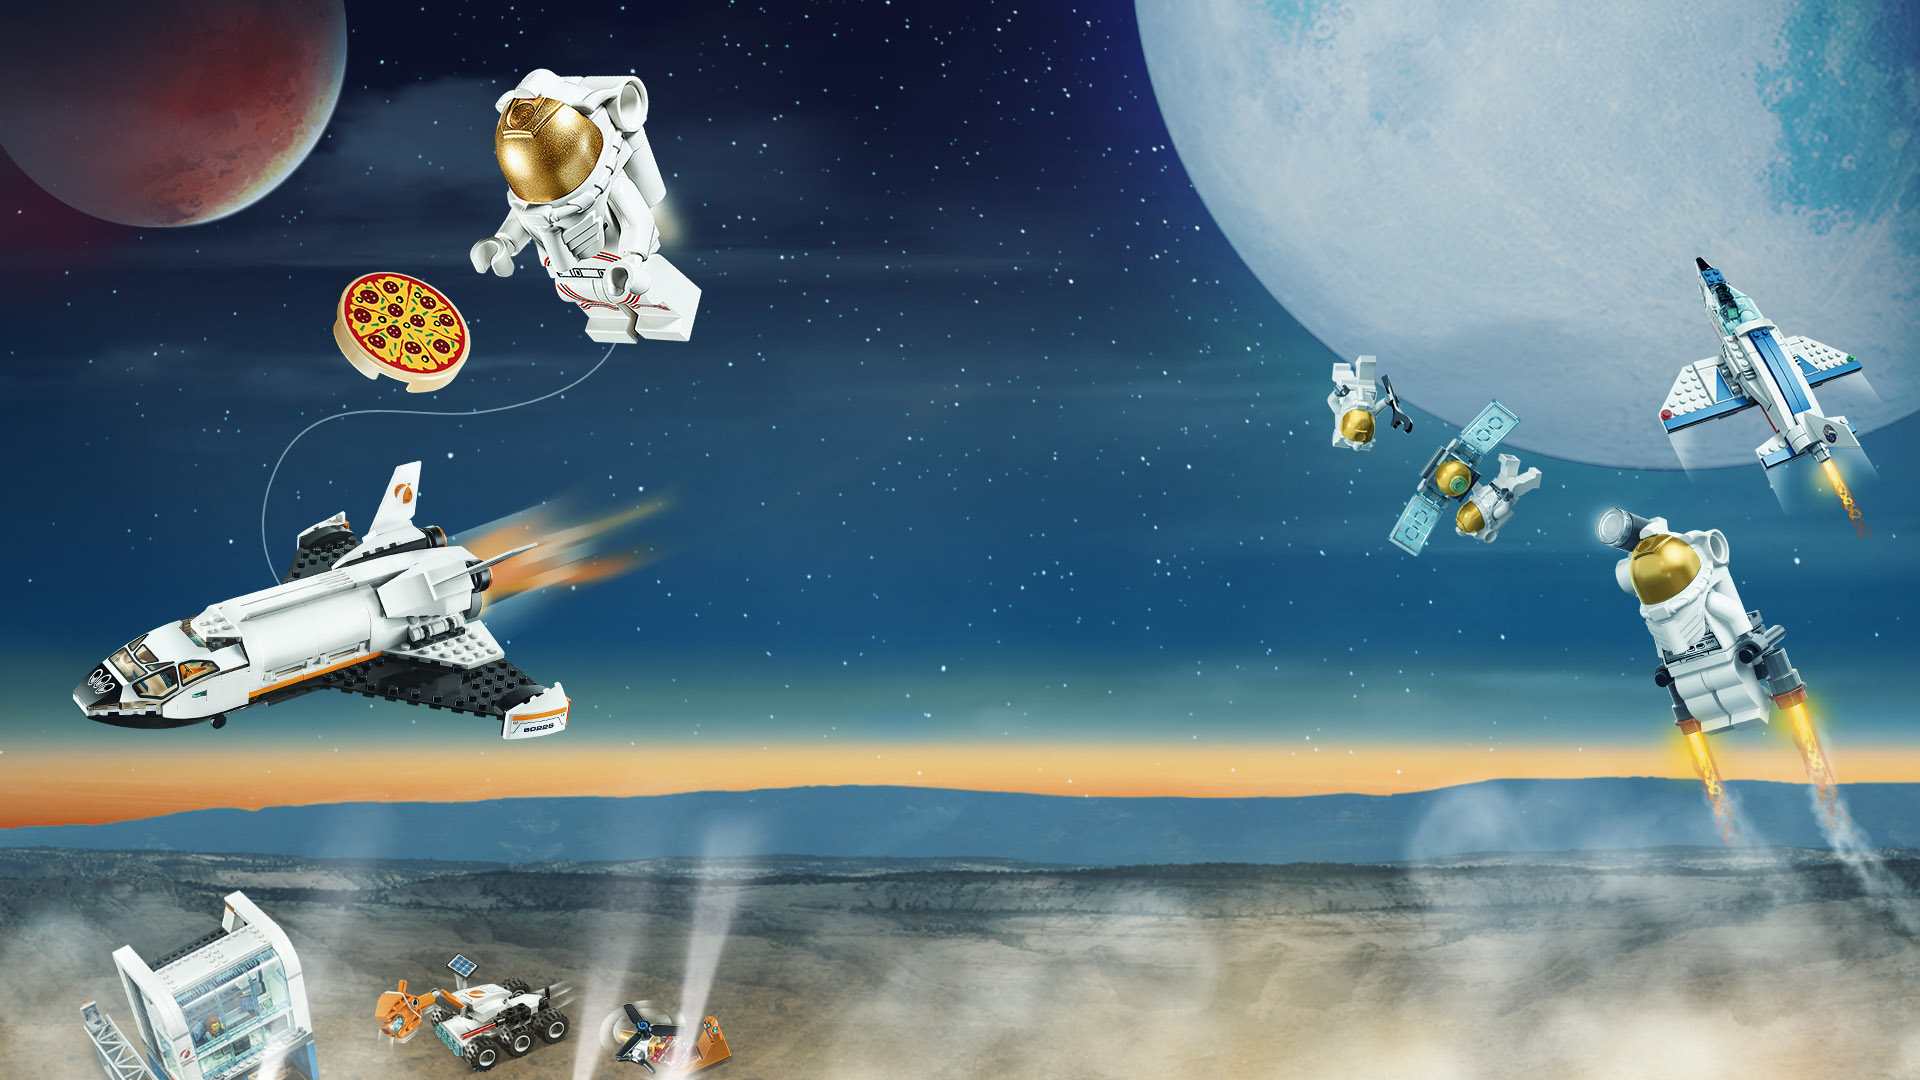 Lego Space - Space with planets and Lego